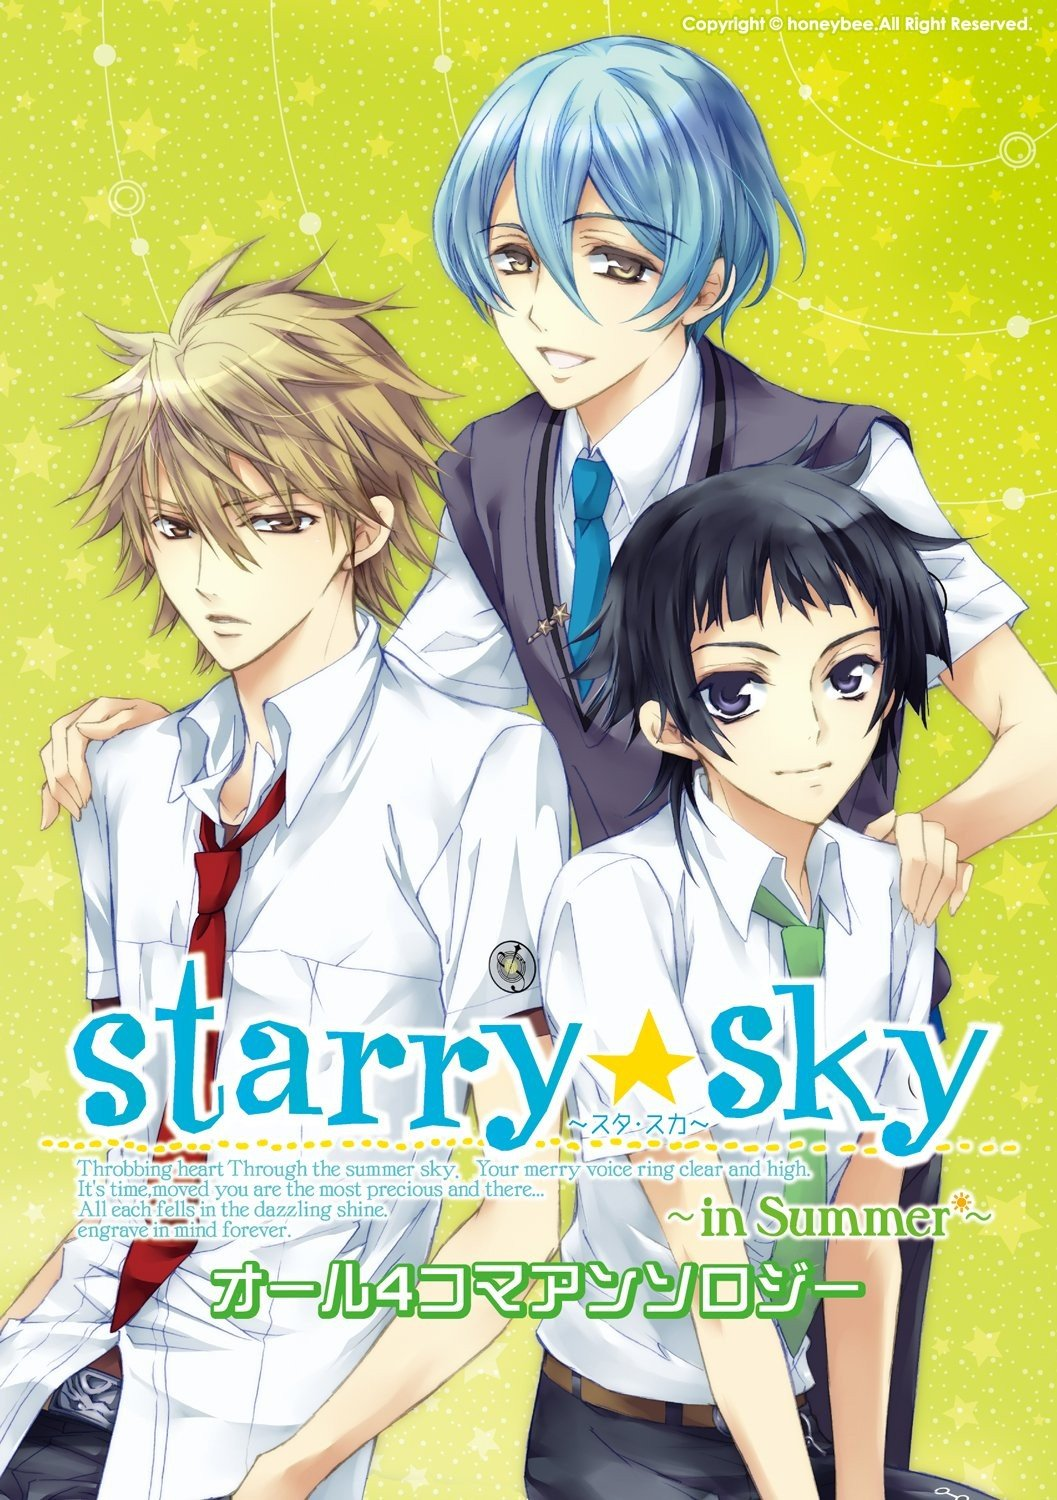 Starry☆Sky ~in Summer~ オール4コマアンソロジー